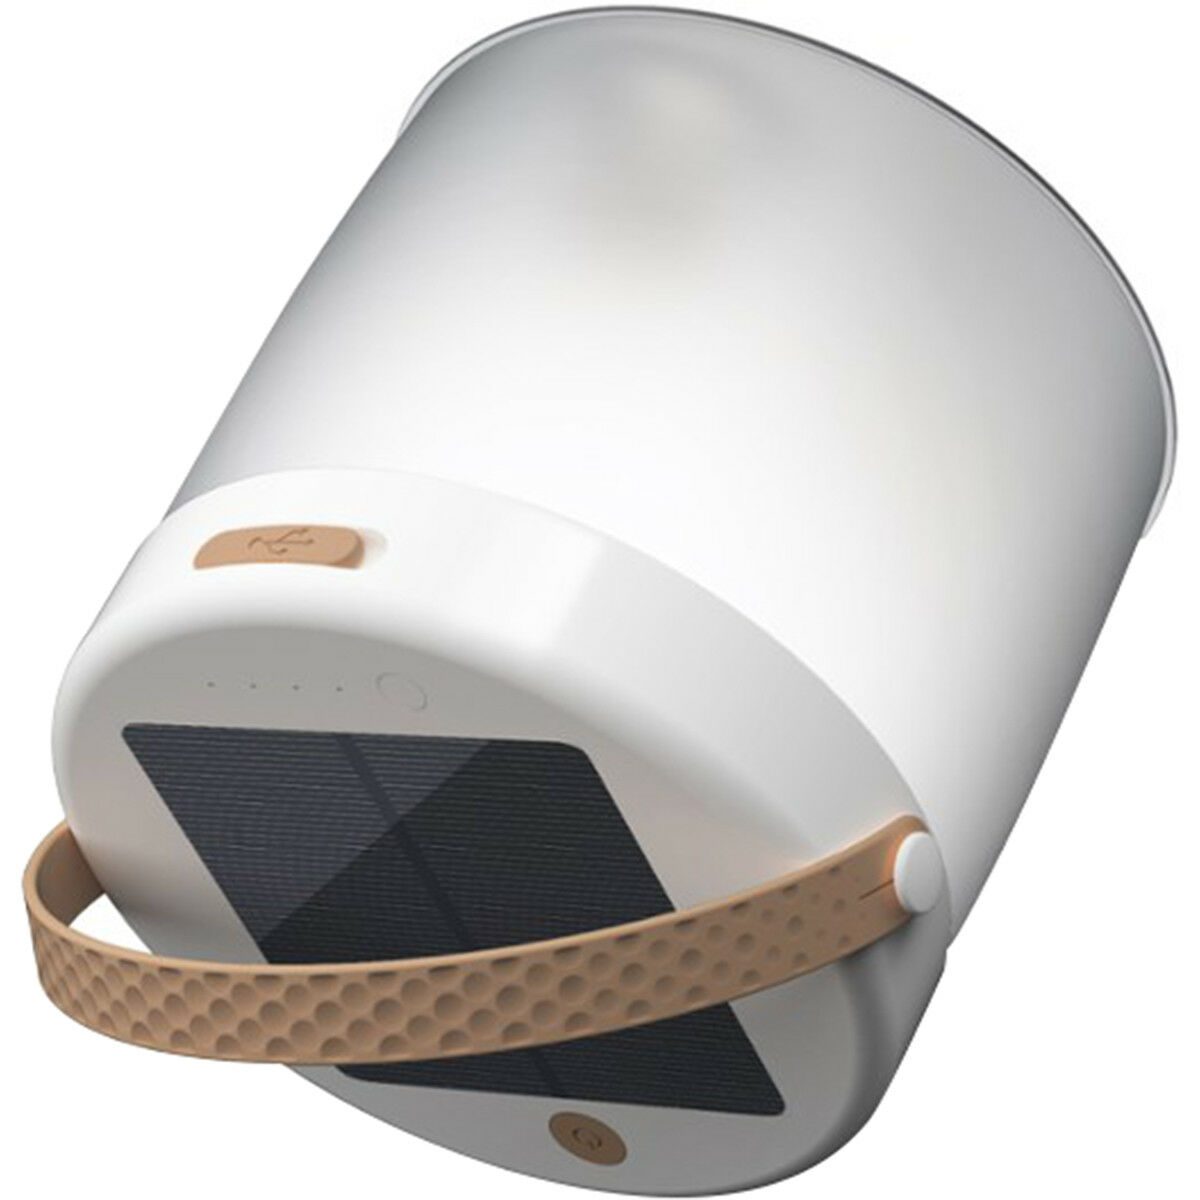 MPowerd Luci Inflatable Smart Solar Light with Mobile Charger